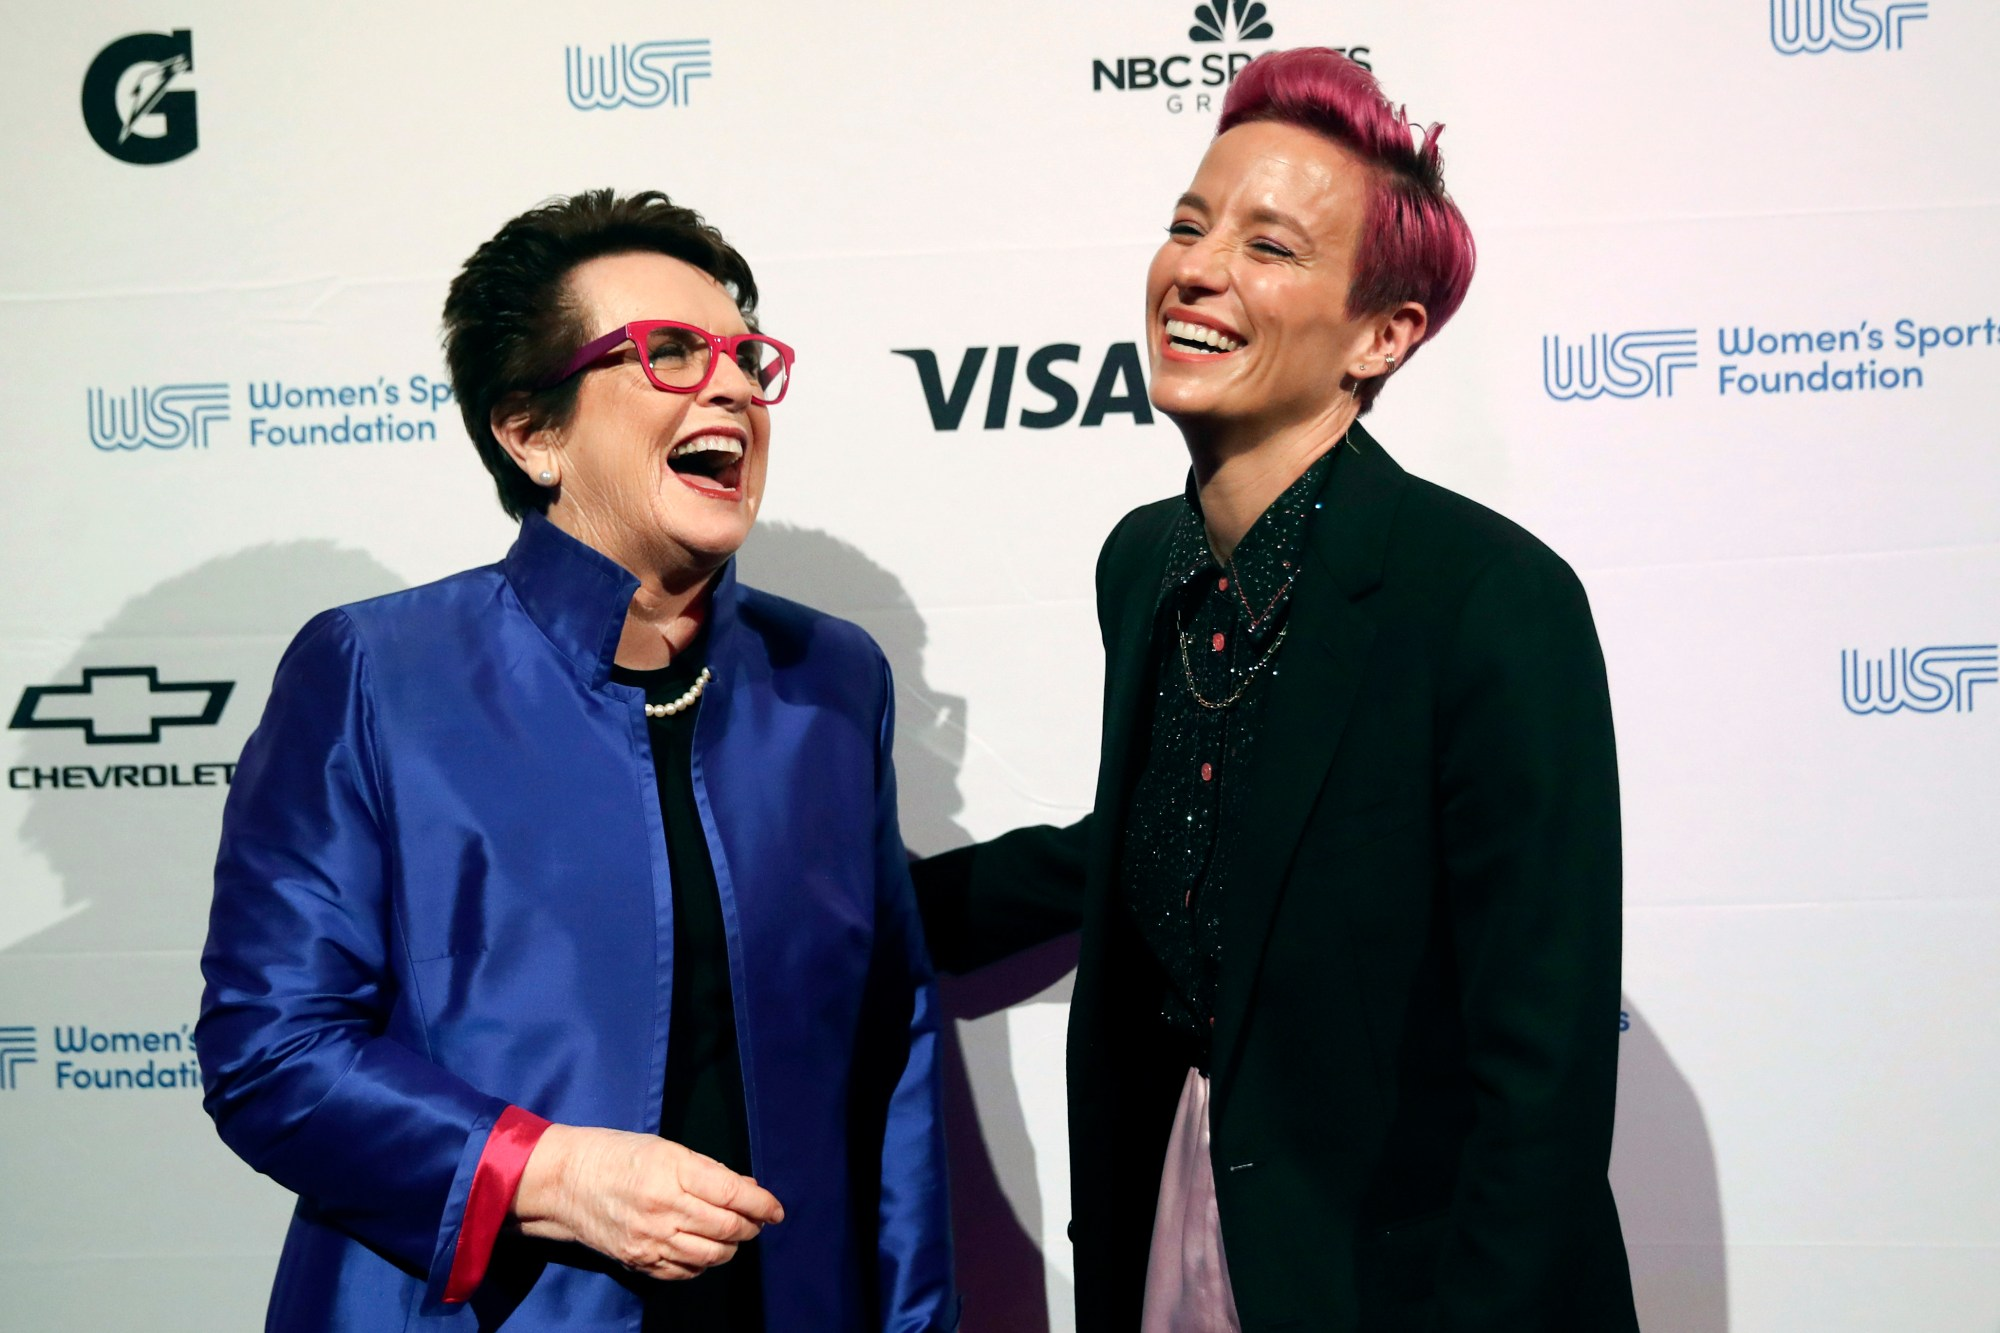 Billie Jean King, Megan Rapinoe